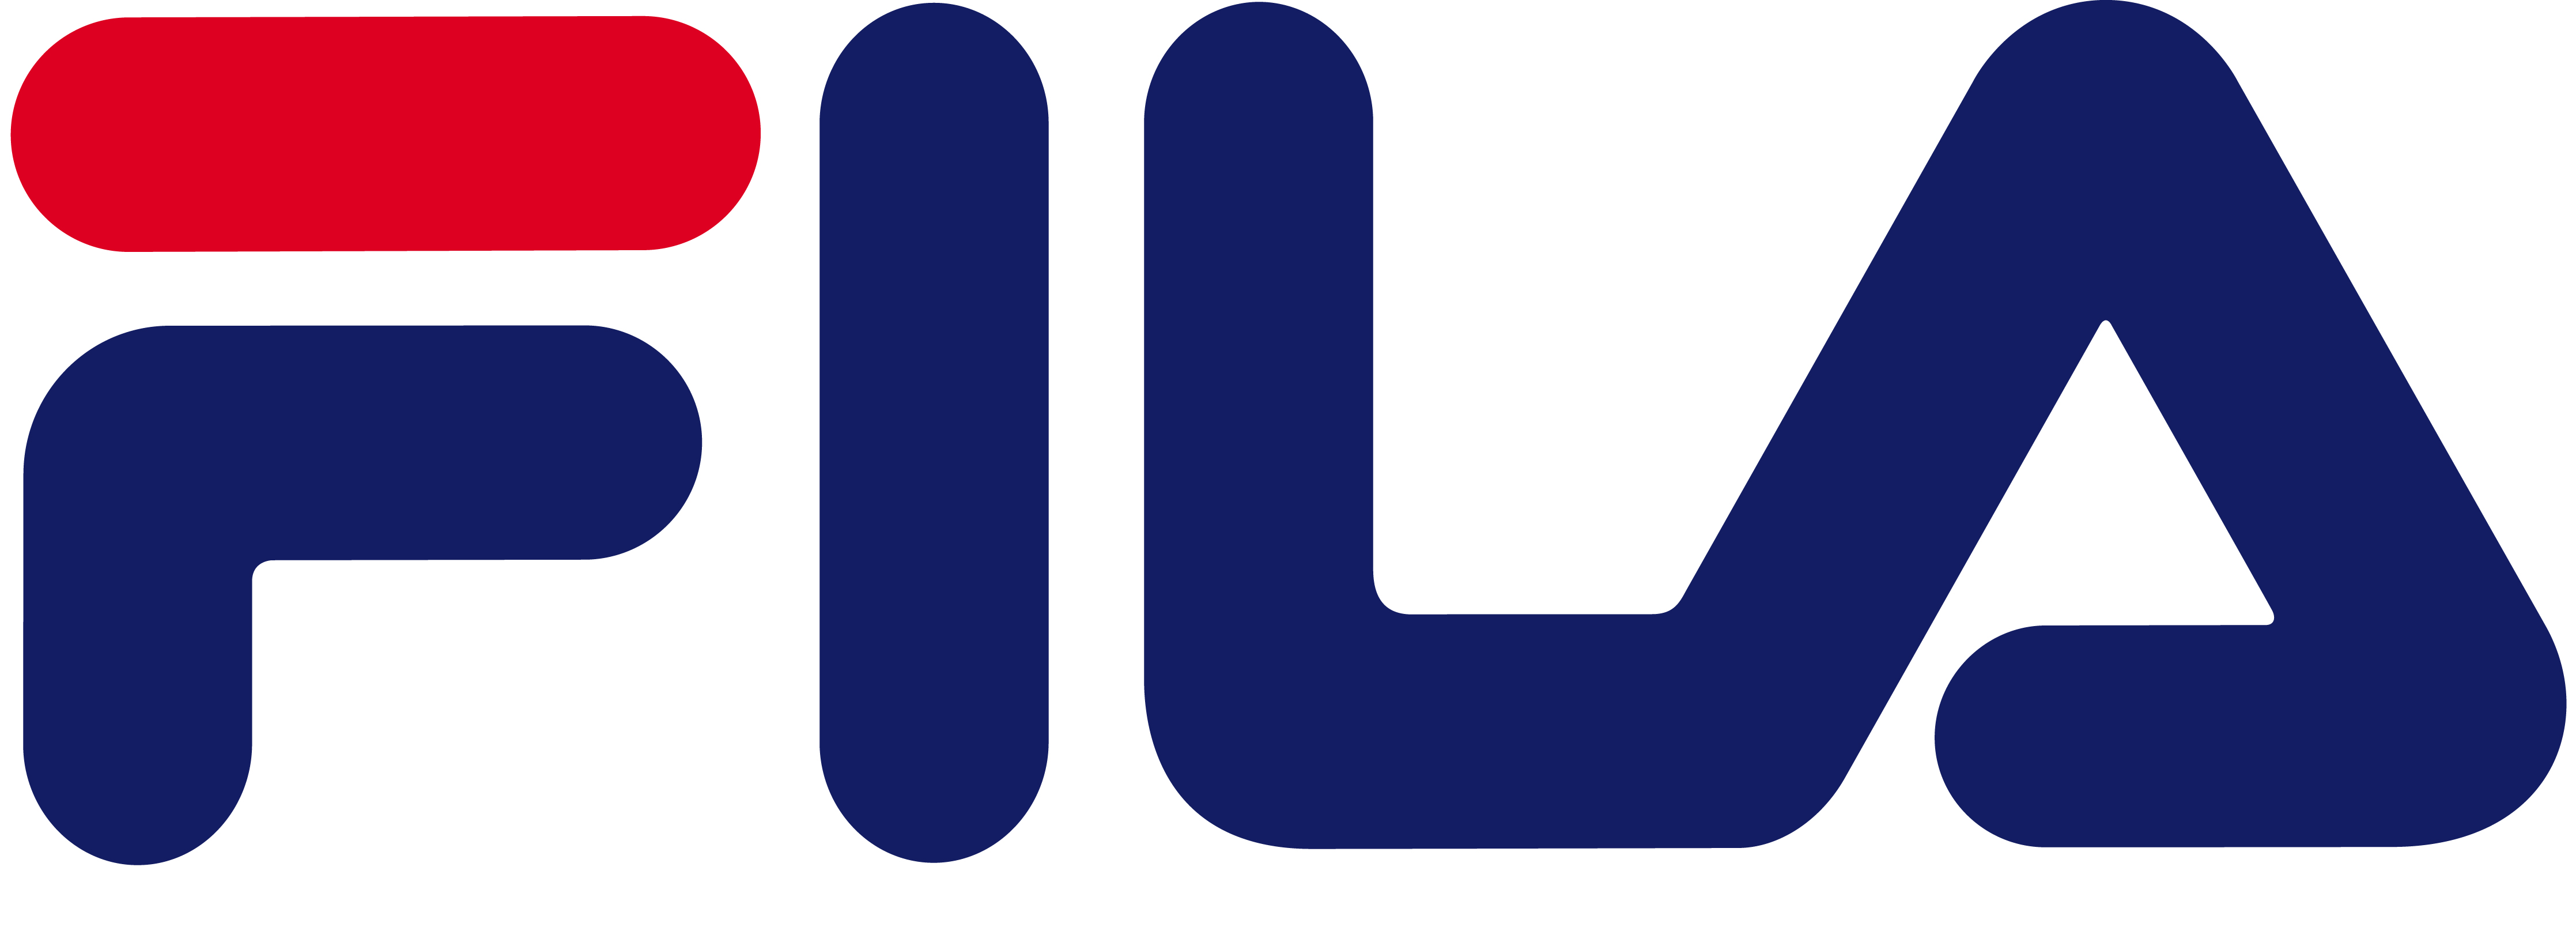 a new look with fila